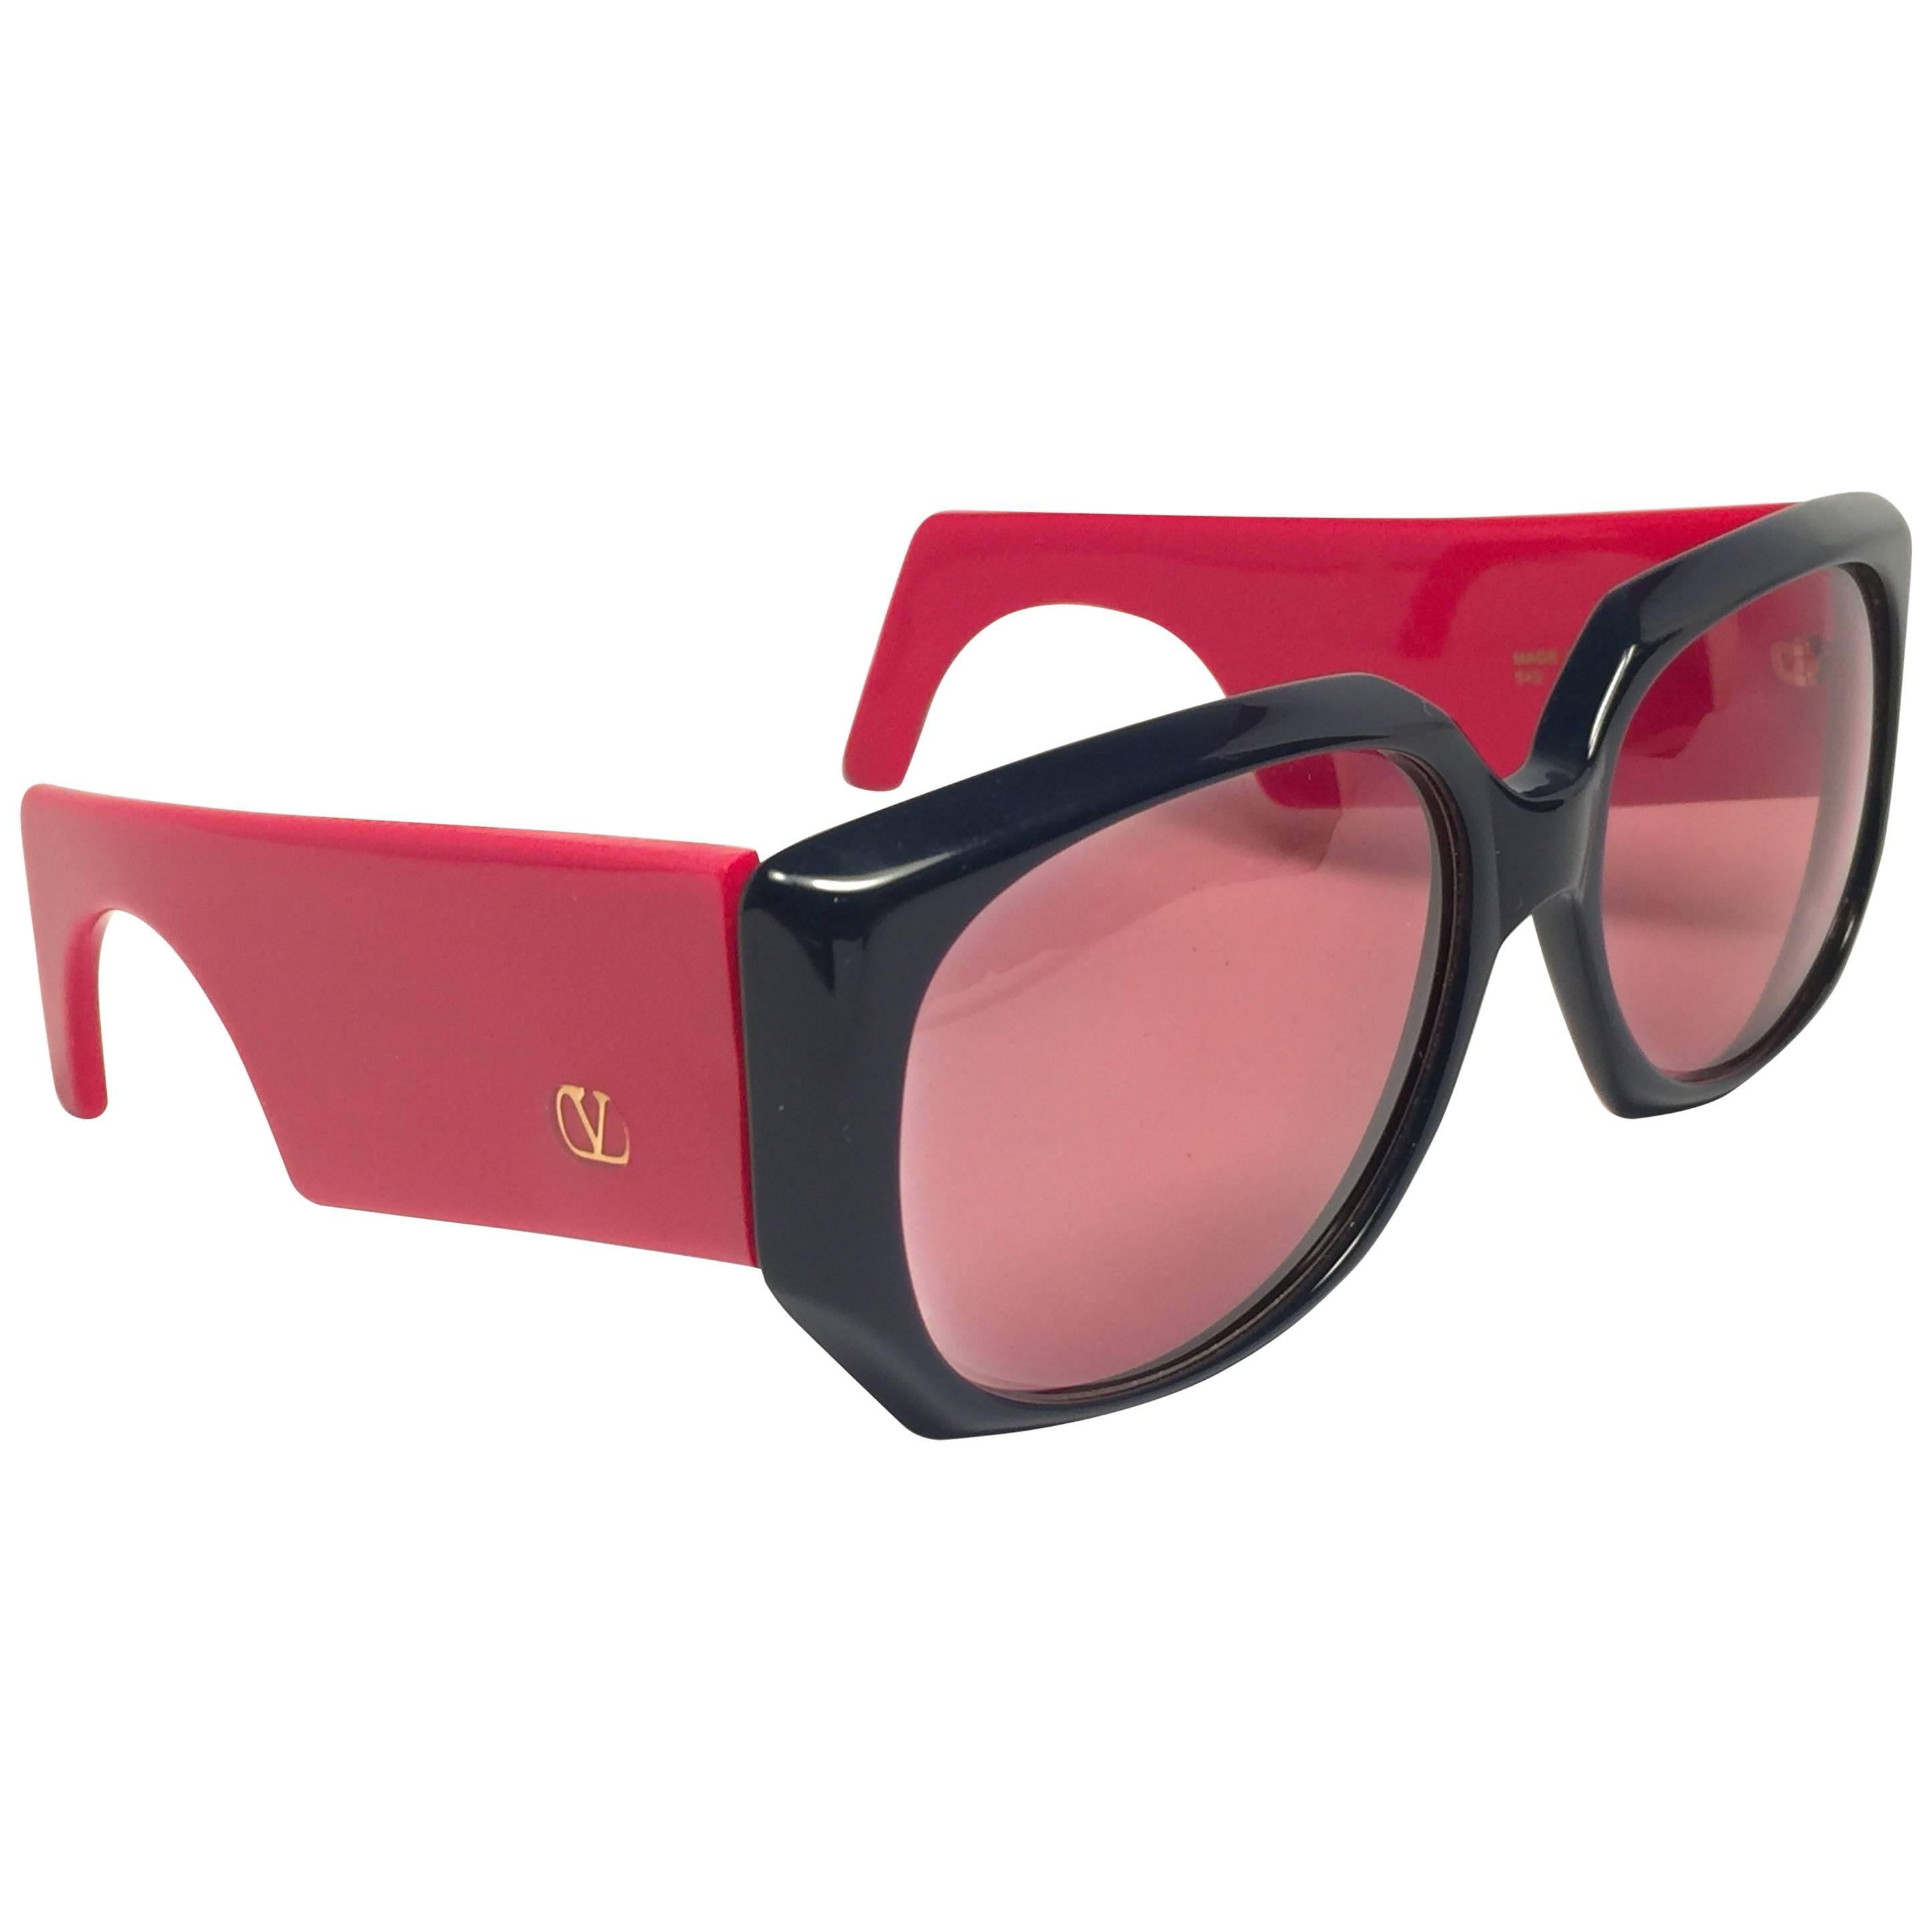 Italy 543 Red Valentino Made Mask 1980's Vintage New In Sunglasses N8PXnOwZ0k